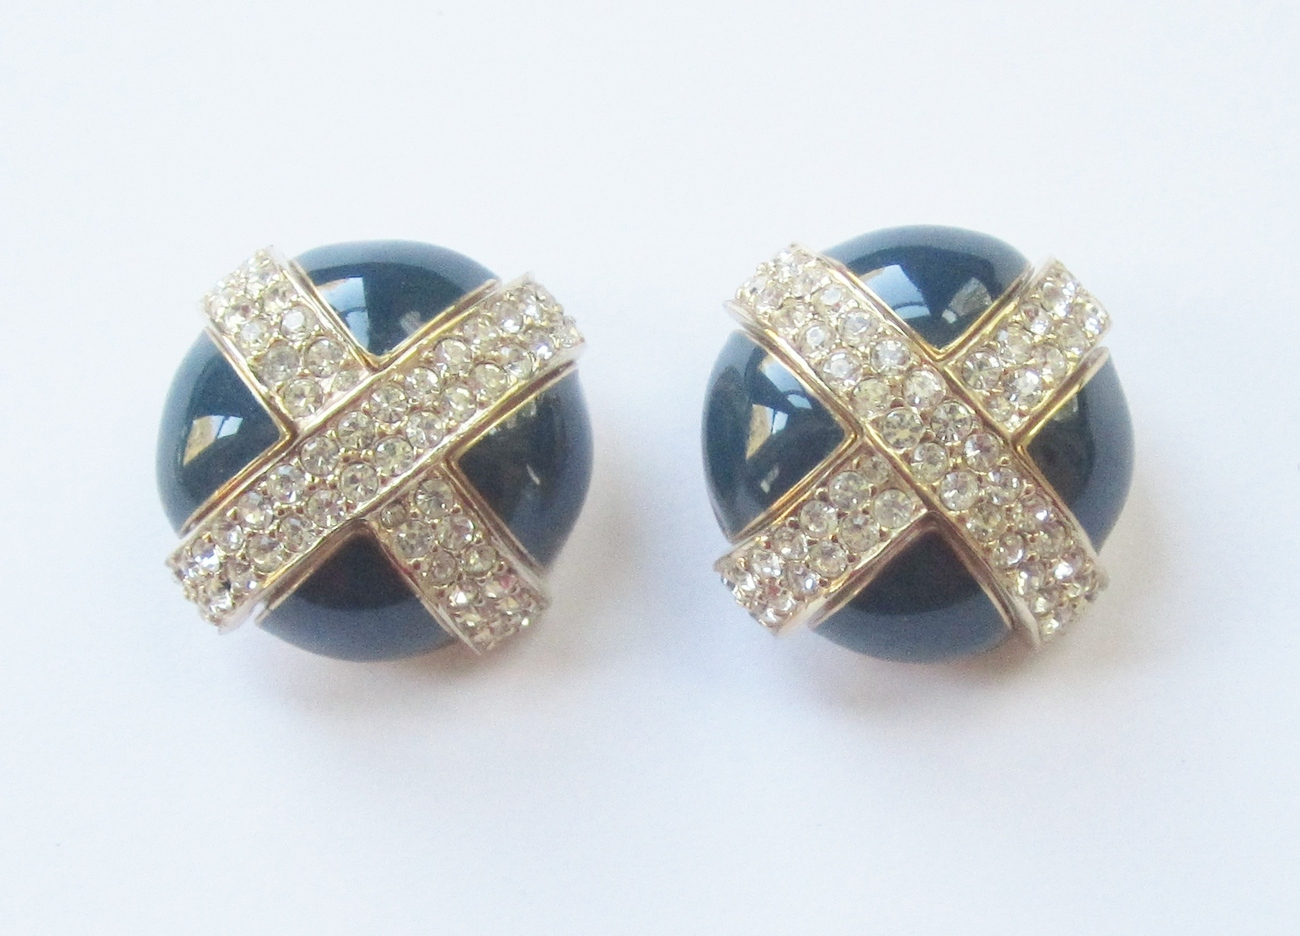 Navy Enamel & Pave Rhinestone X Earrings, by Ciner. c. 1970s.